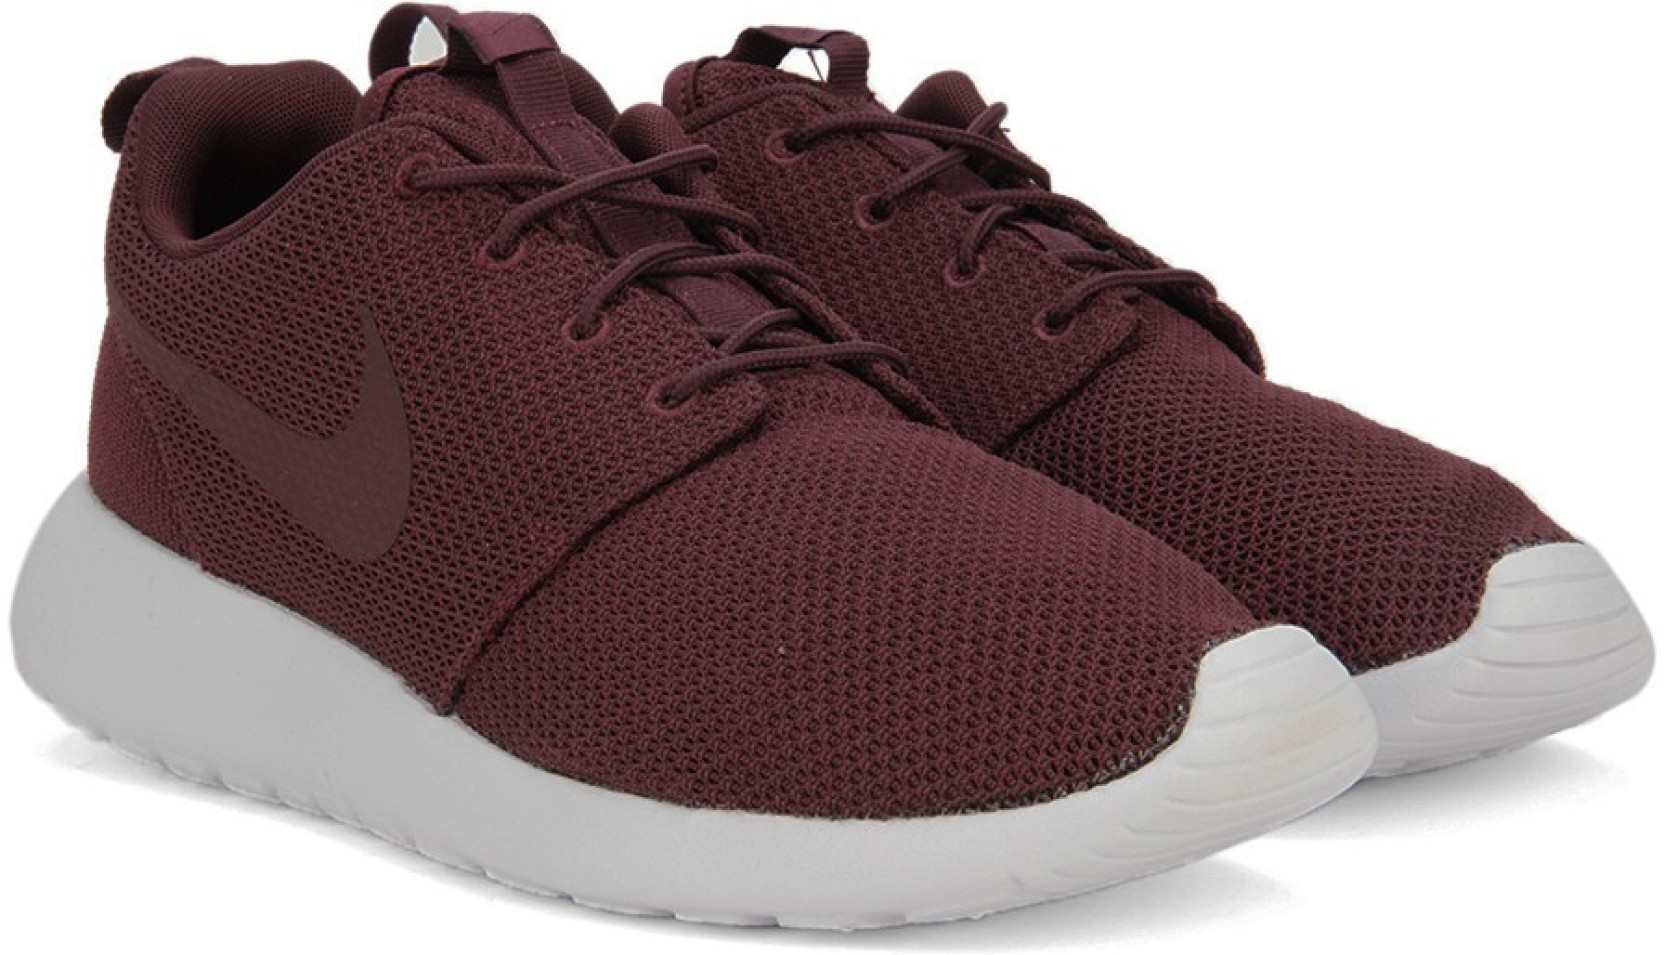 competitive price f654e d2836 Nike ROSHE ONE Sneakers For Men - Buy NIGHT MAROON/NIGHT MAROON ...